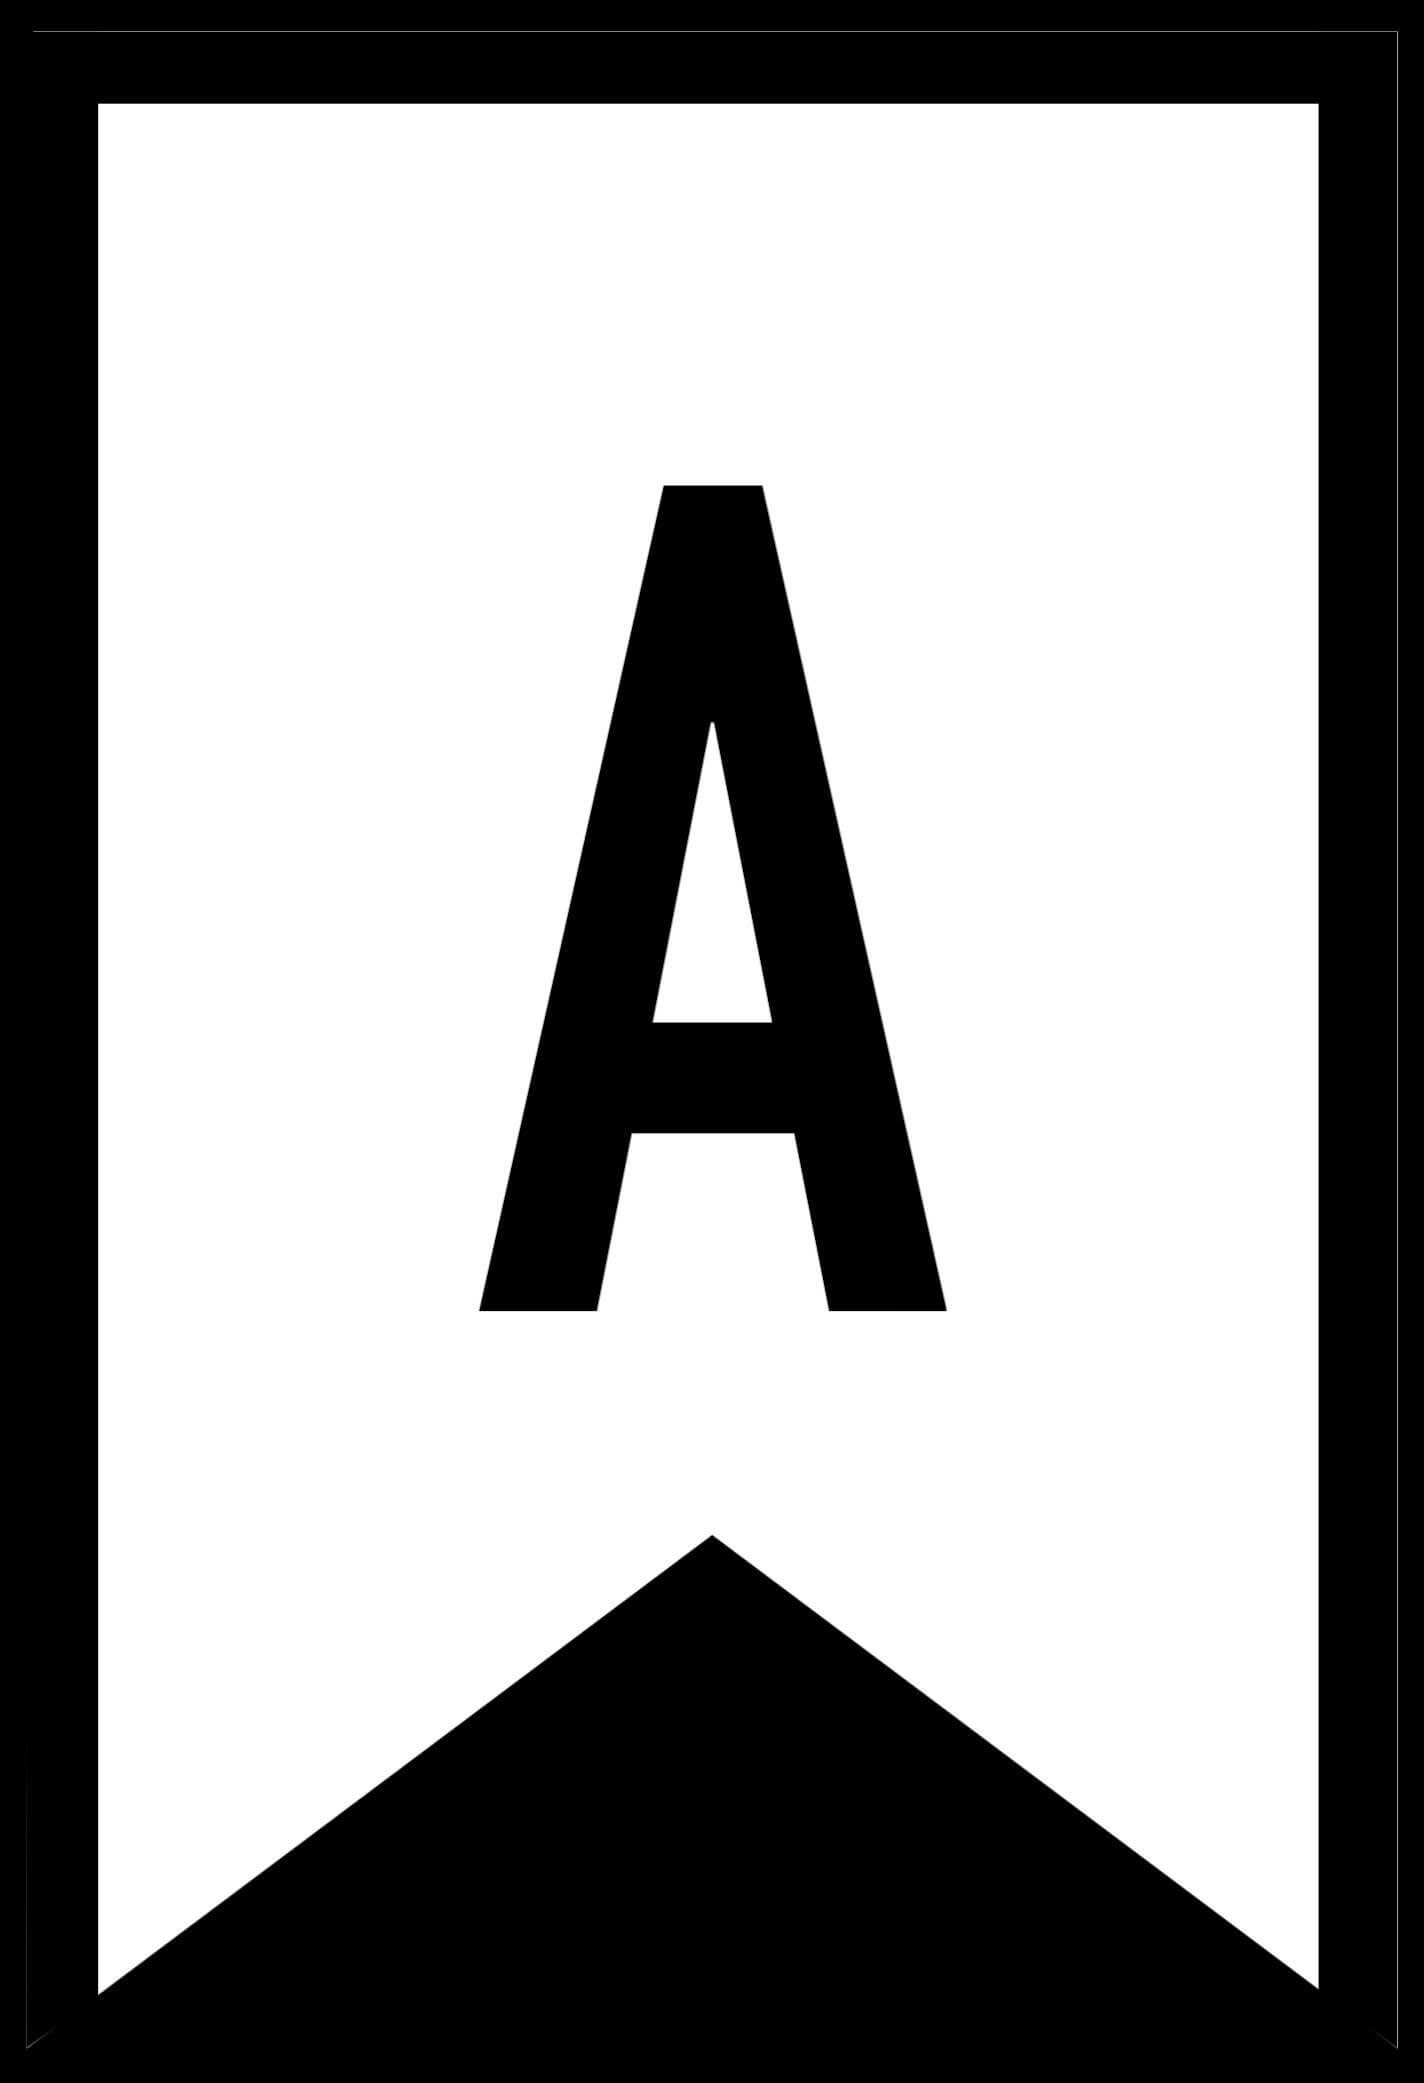 Free Printable Letters For Banners Entire Alphabet Letter within Letter Templates For Banners